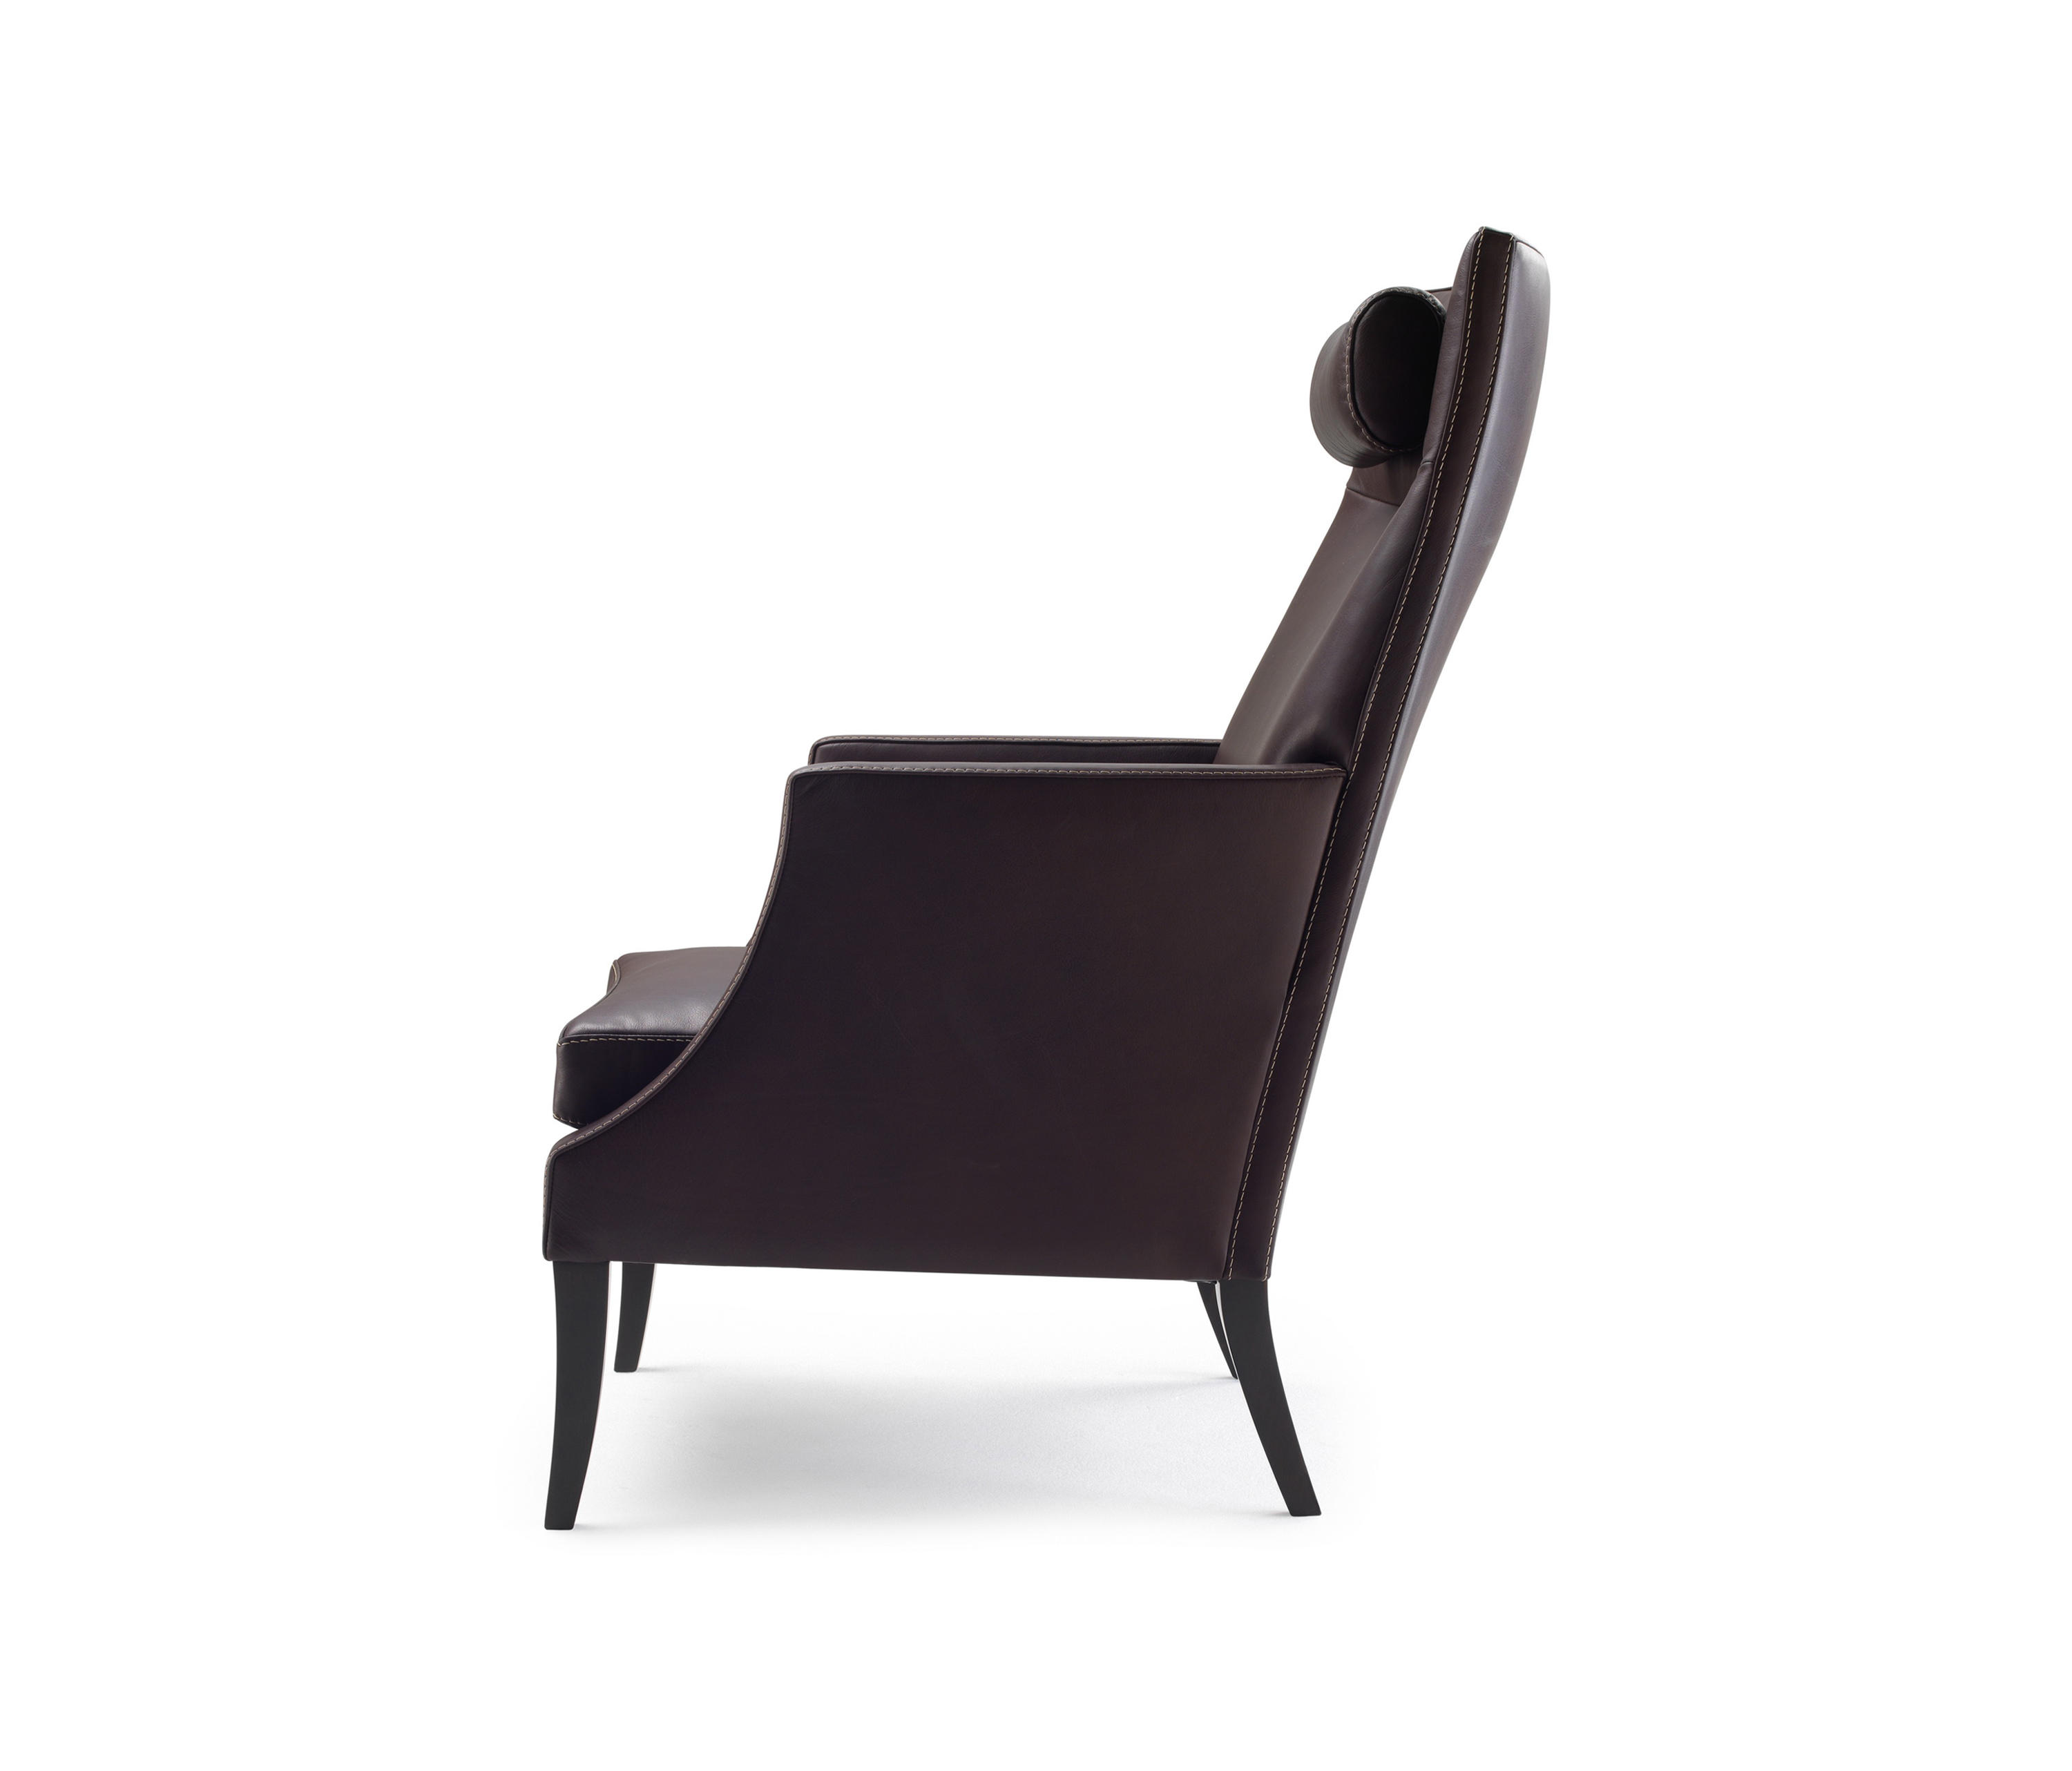 LABDA OCCASIONAL HIGH - Armchairs from Bench | Architonic